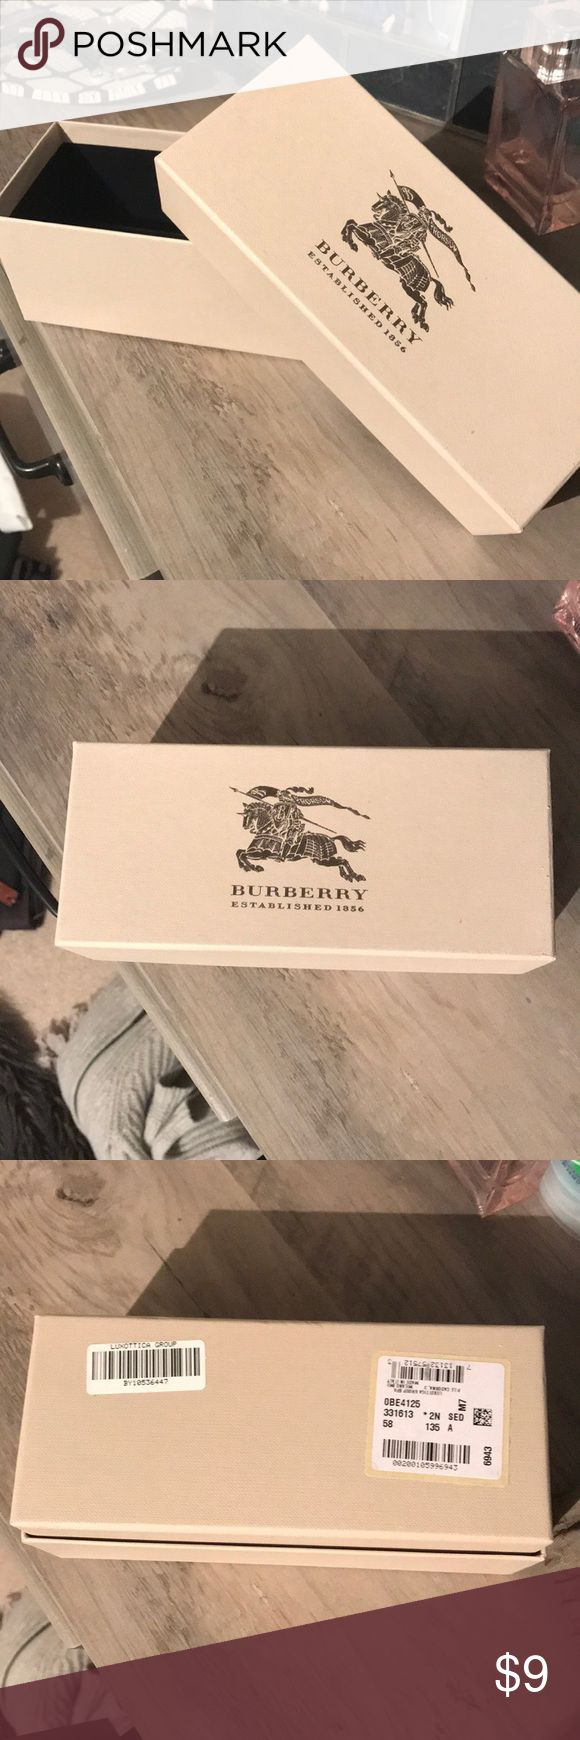 Burberry glasses gift box Burberry glasses gift box Burberry Other